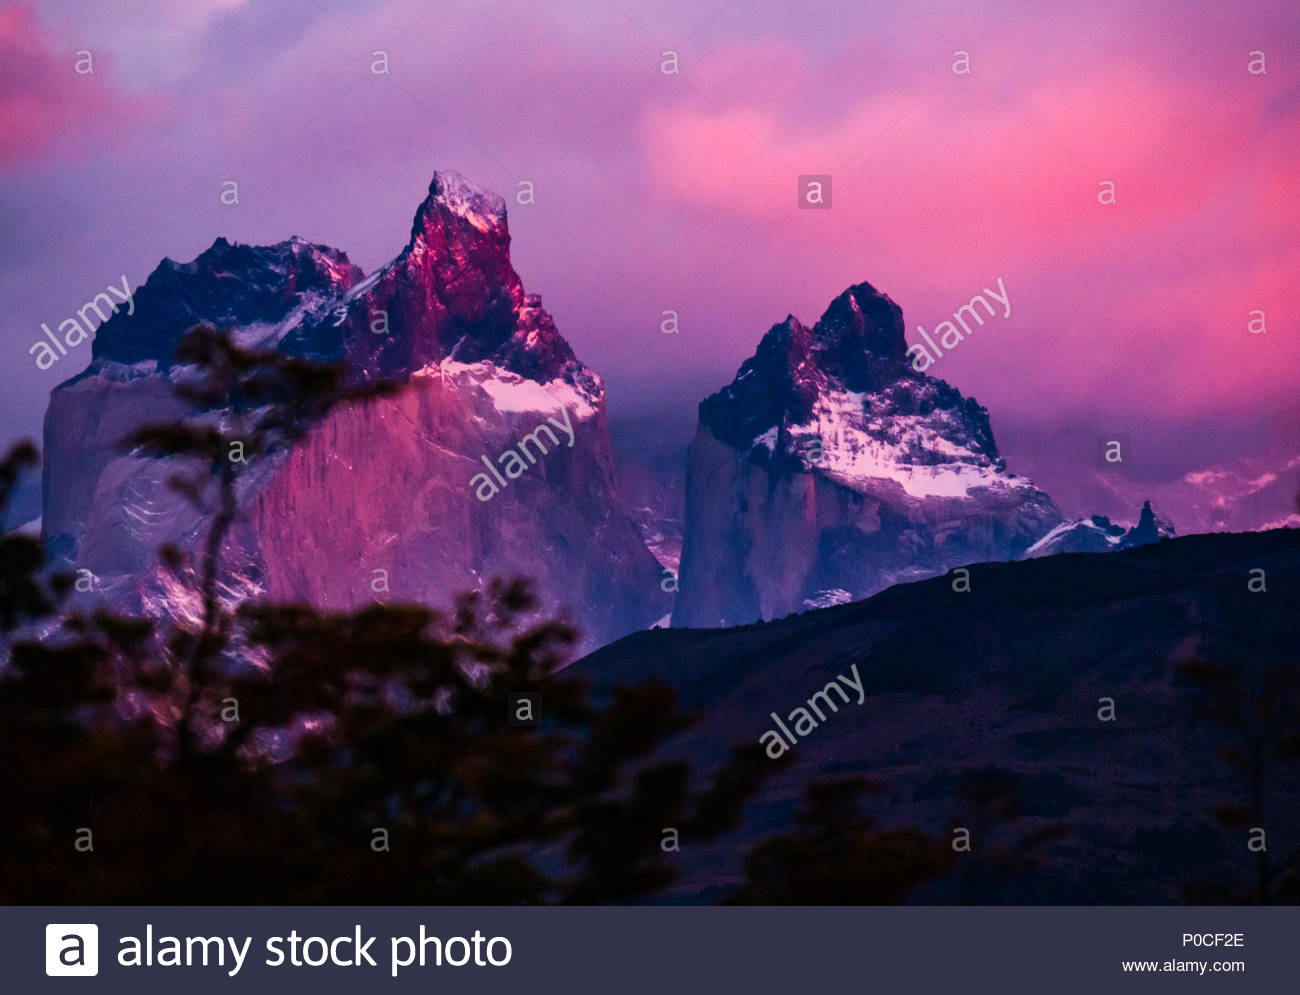 dramatic-pink-sunrise-in-zoomed-view-of-